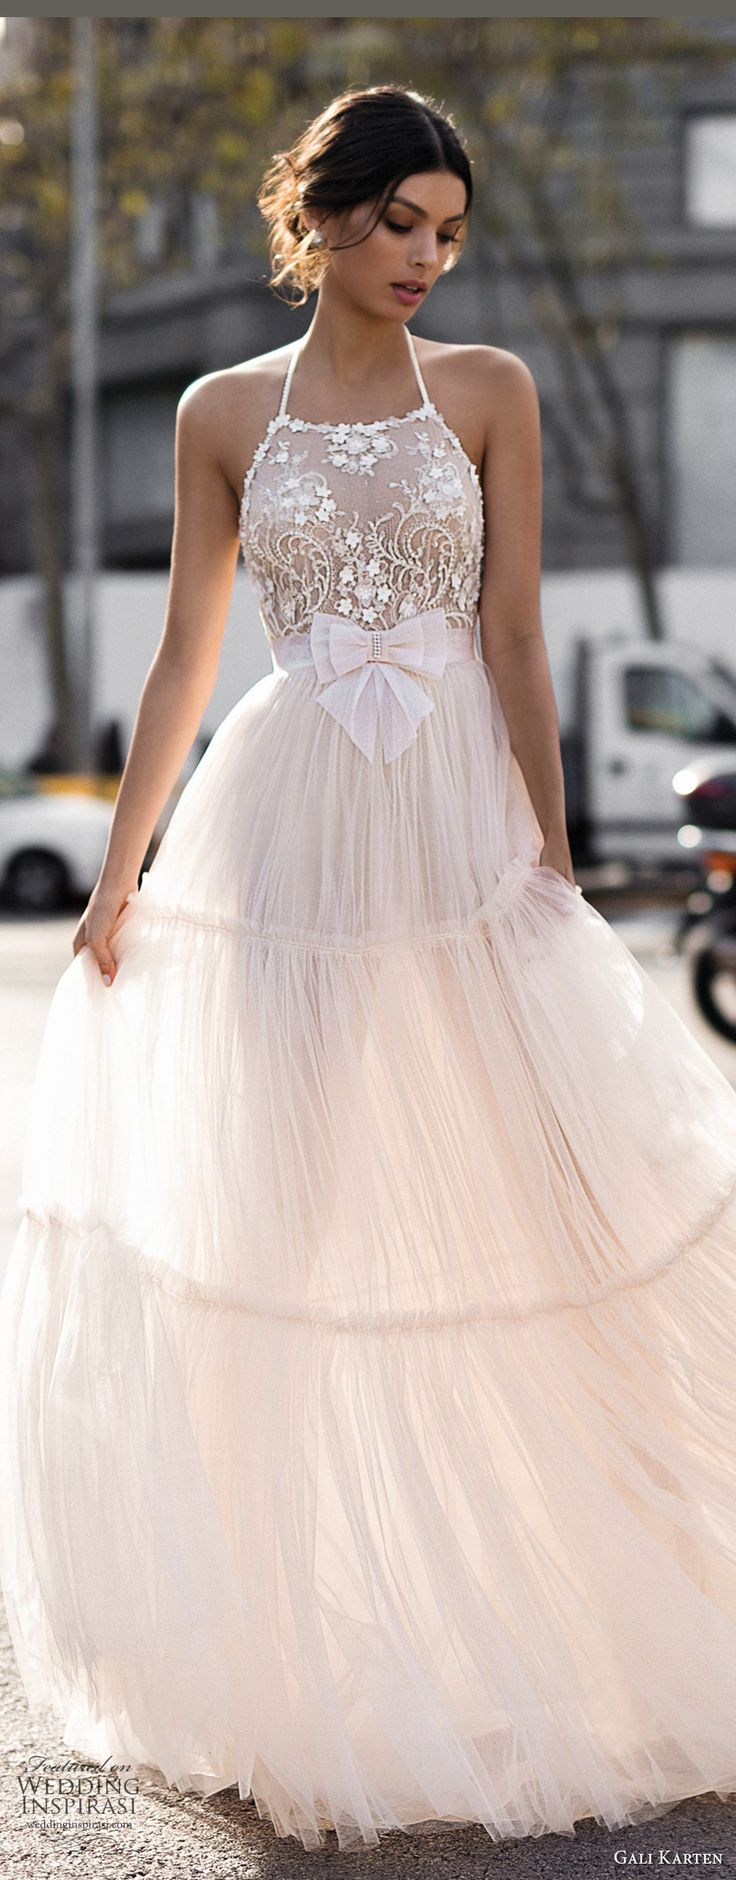 Gali Karten 2017 bridal sleeveless halter neck heavily embellished bodice romantic a line wedding dress open strap back sweep train